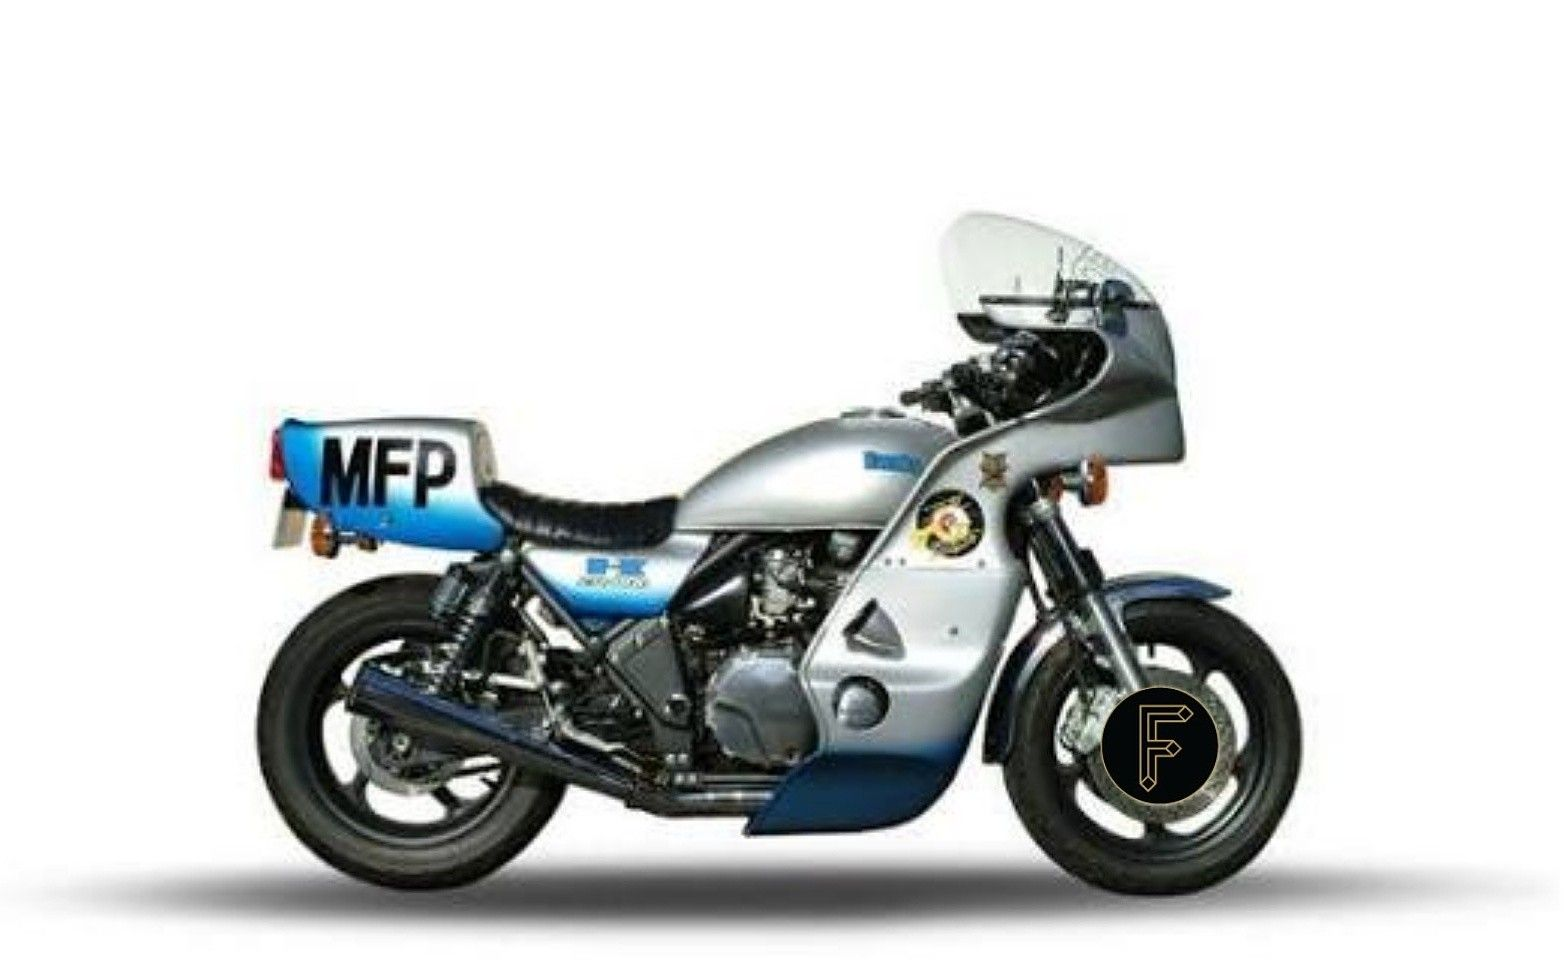 small resolution of moto legends the most iconic motorcycles from fiction 1977 kawasaki kz1000p mad max 1979 firemotorcycle motolegend kawasaki